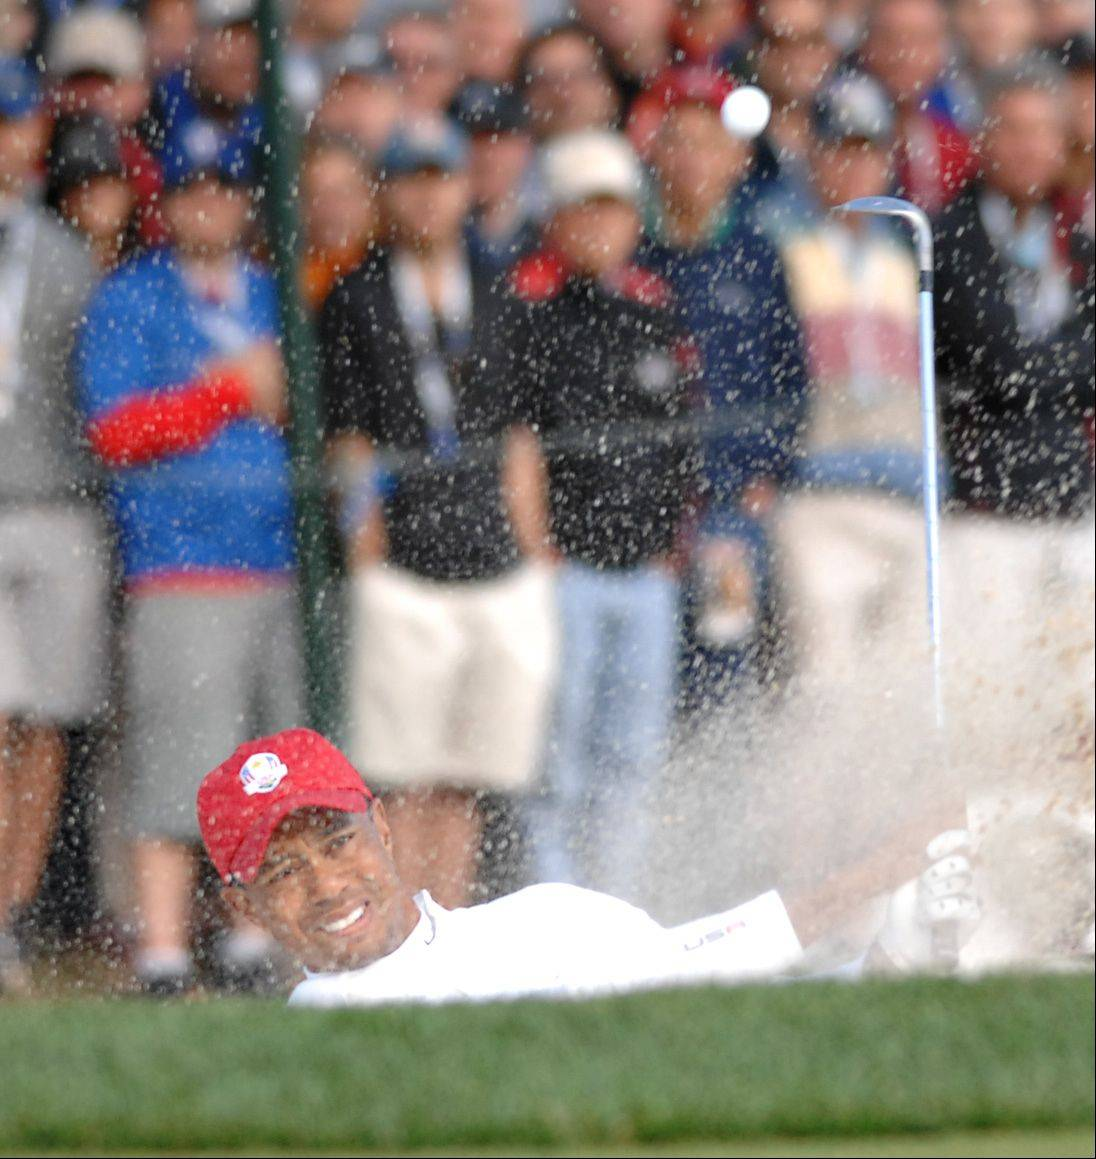 Tiger Woods blasts out of a green-side bunker on the 5th hole Friday morning during foursome play at Medinah.